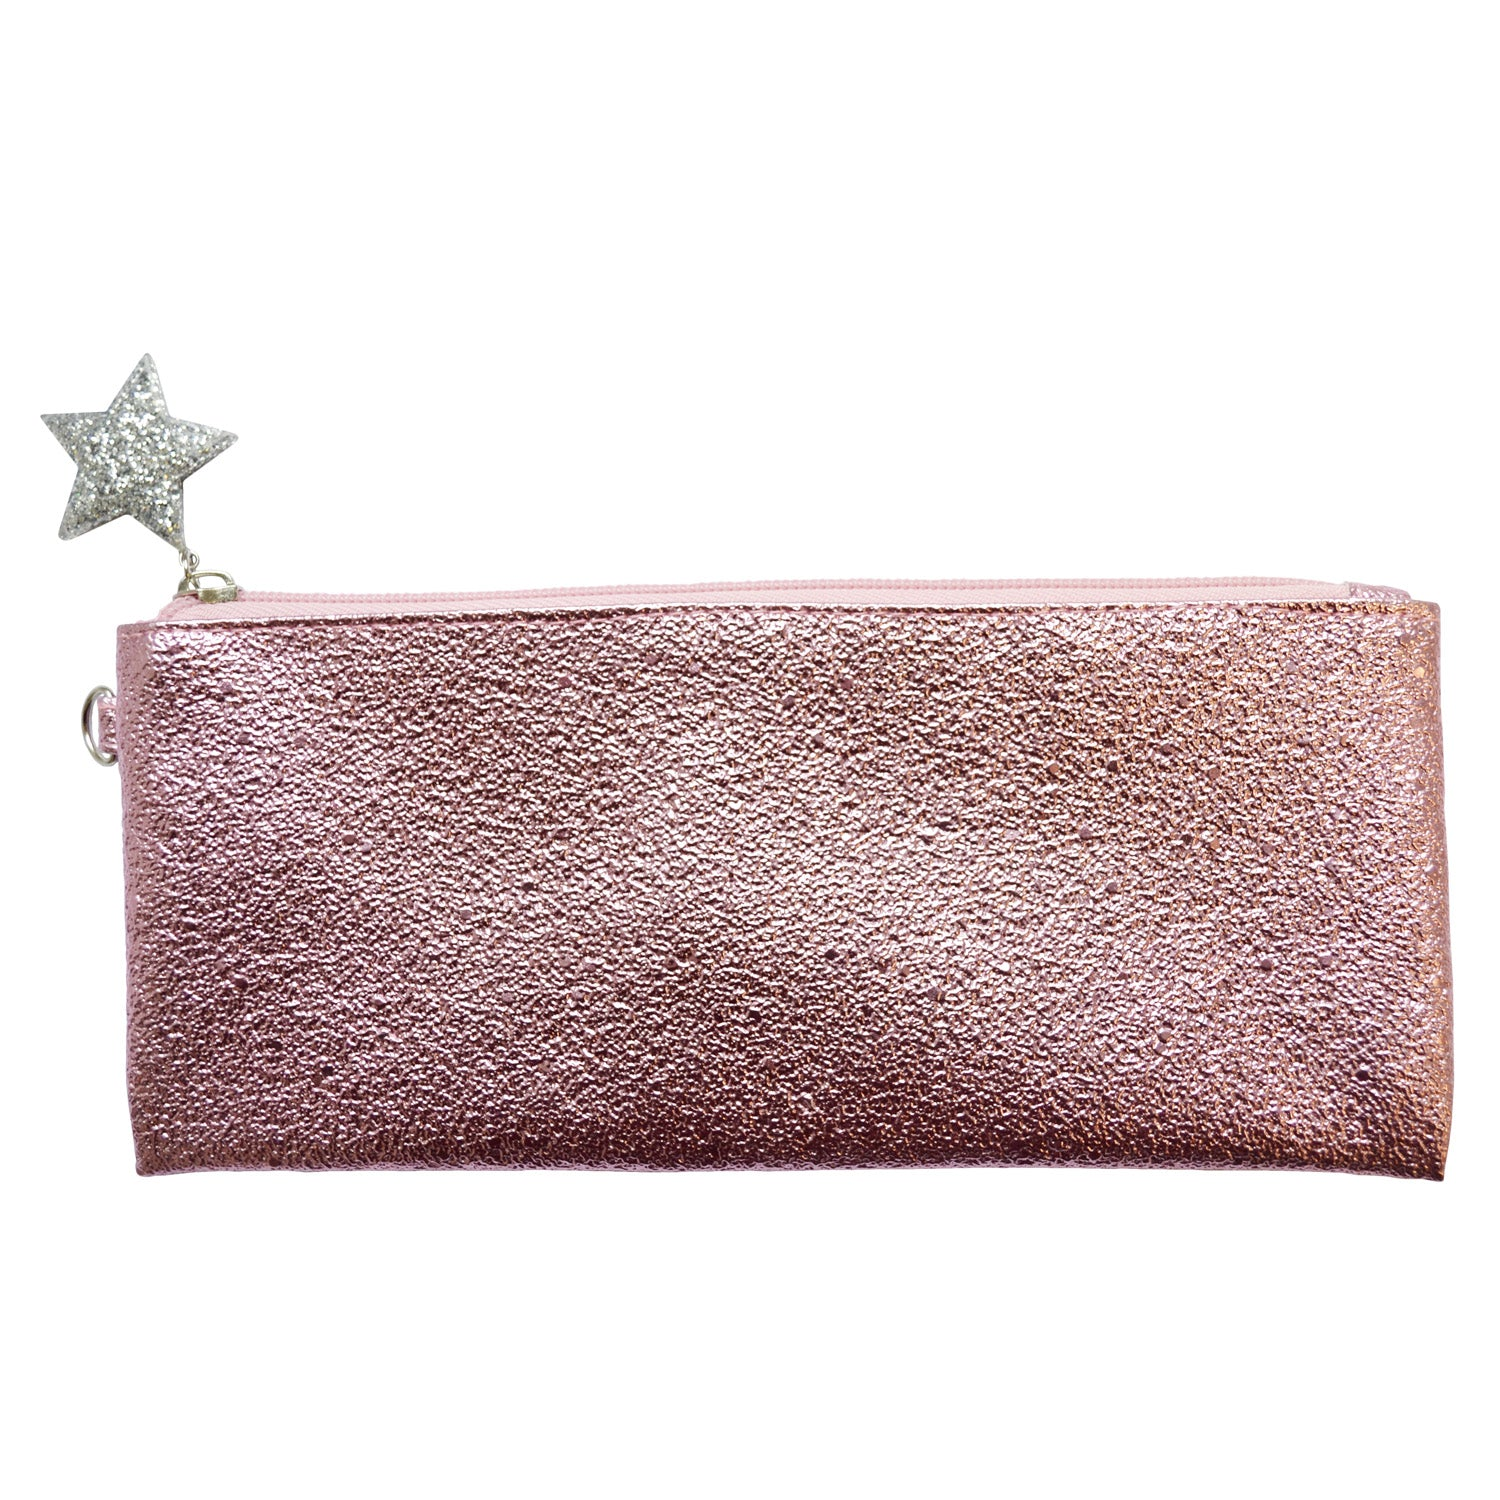 Crushed Foil Pencil Case Star Zip - Pink - MissieMay